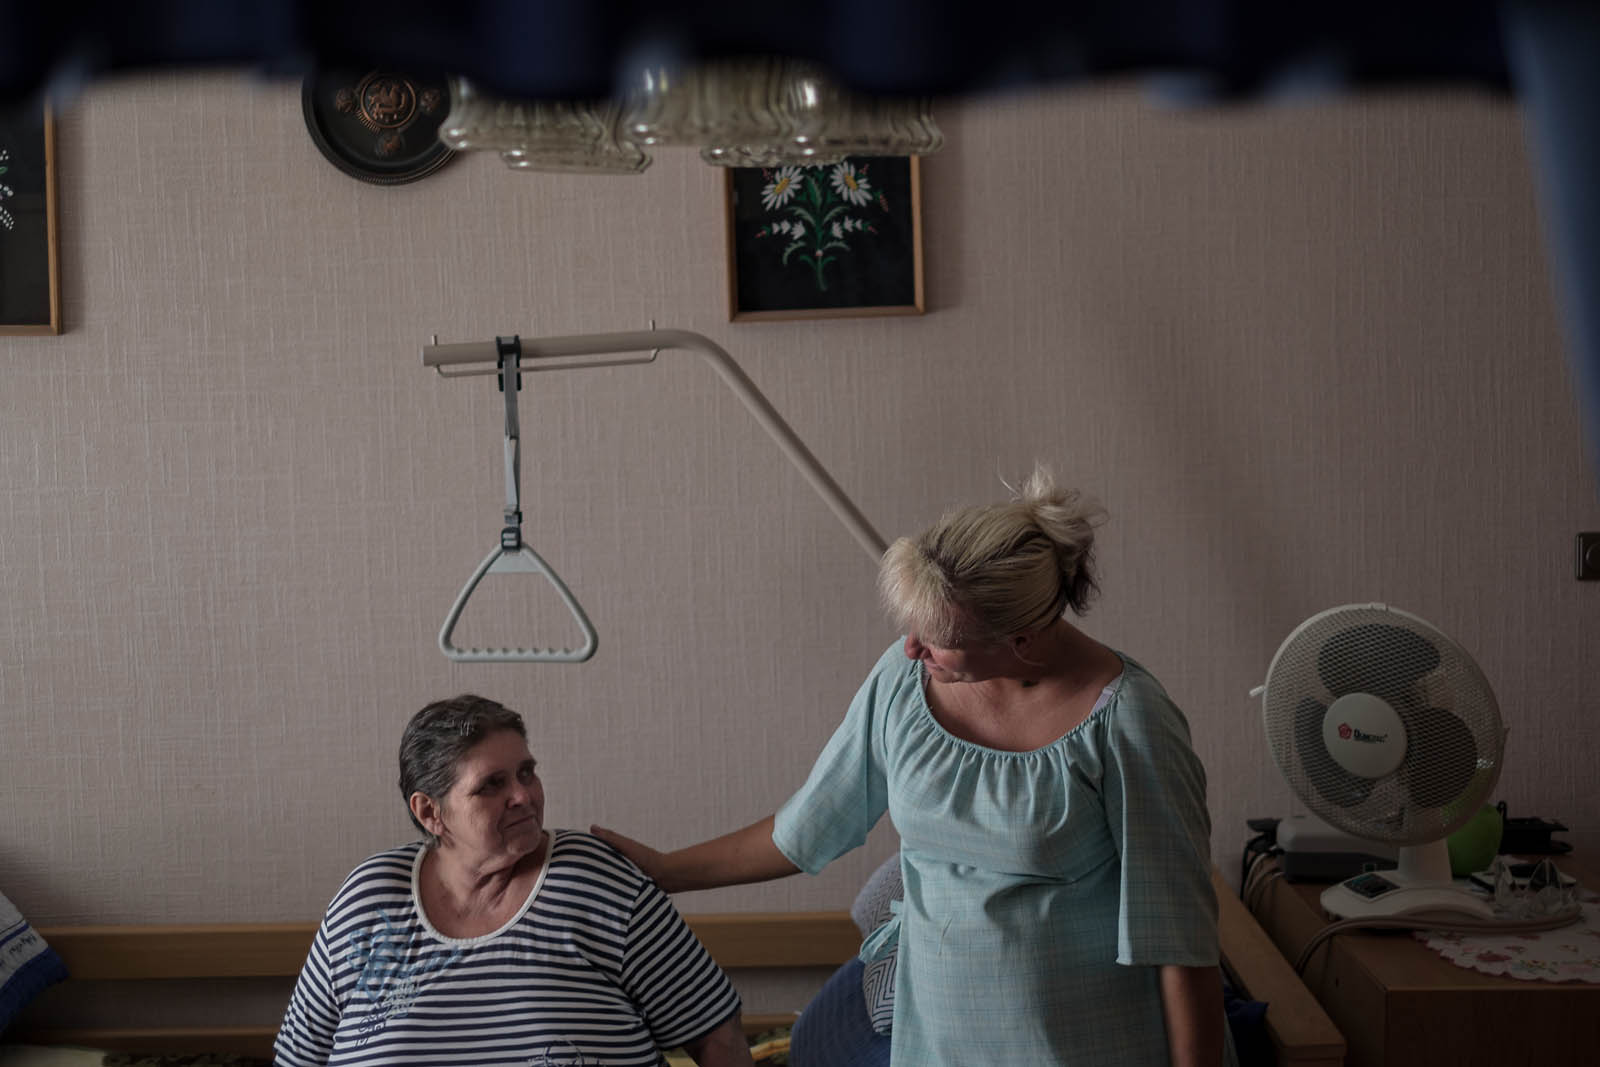 Home care for ill and elderly people